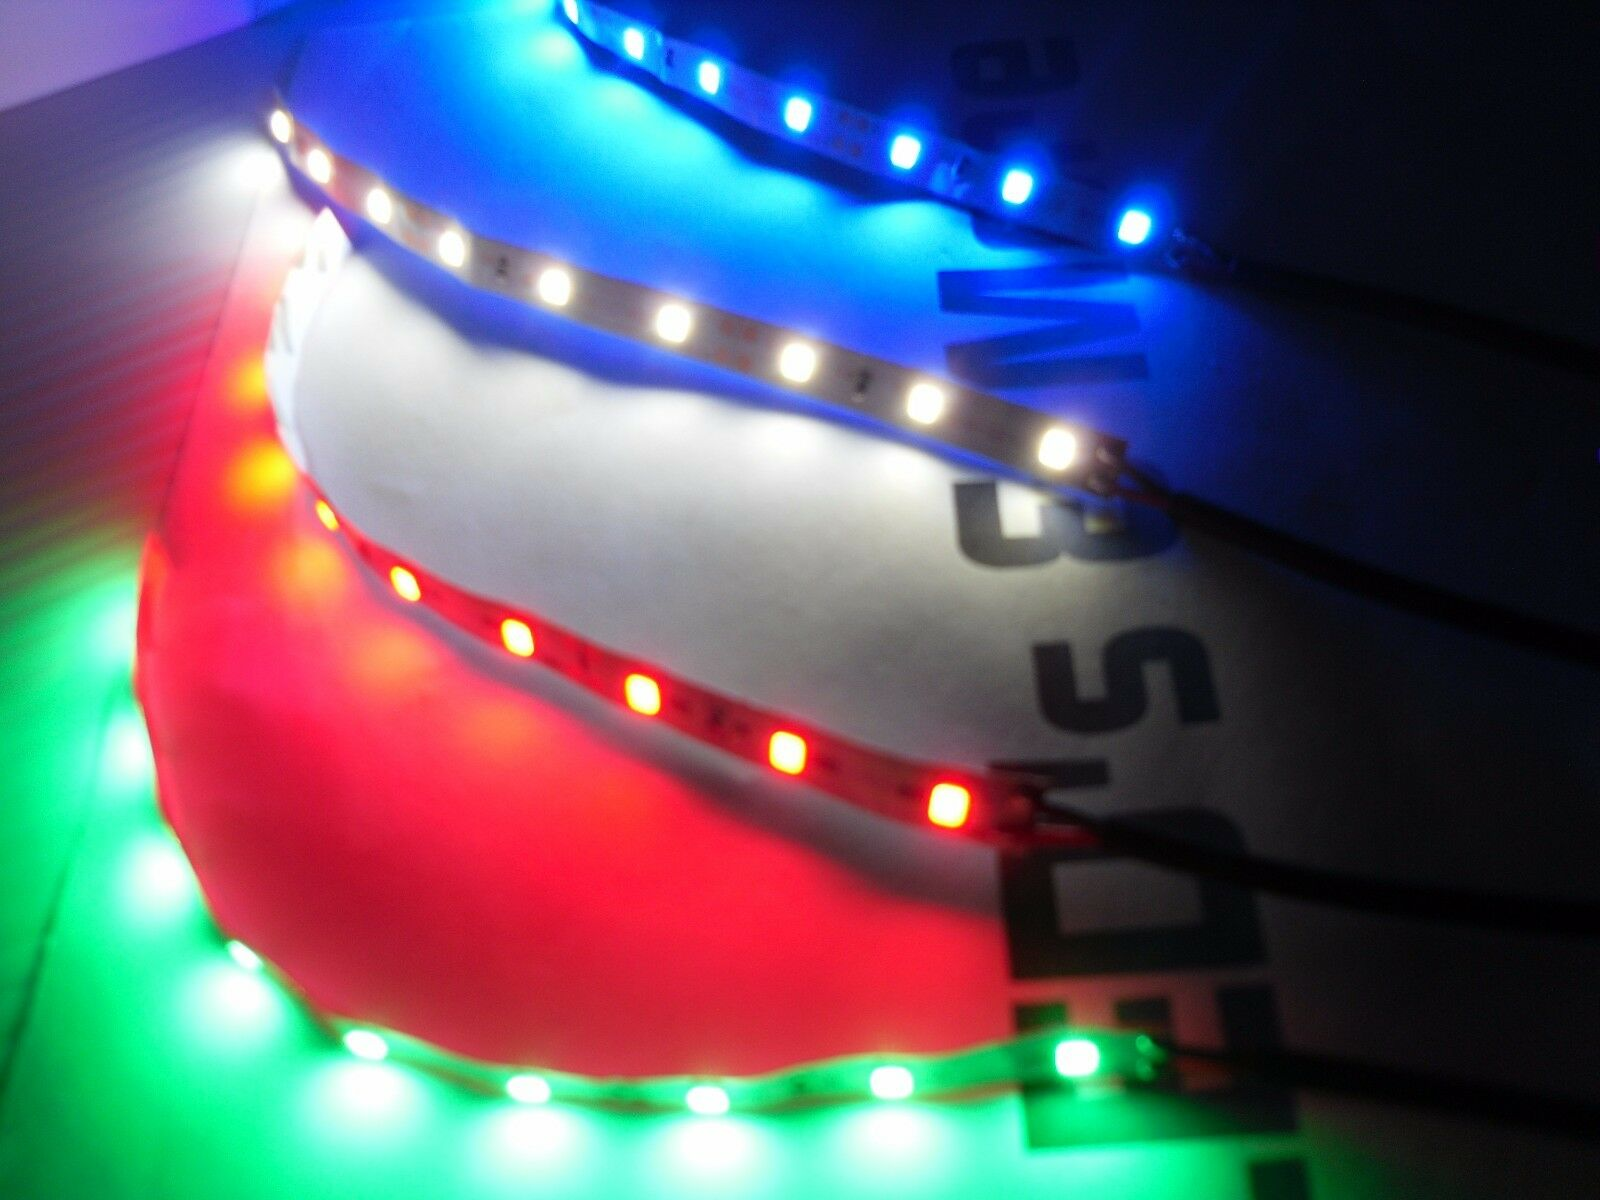 LED Lights for Acrylic Lamp Bases Edge lit sign 6 Colors W